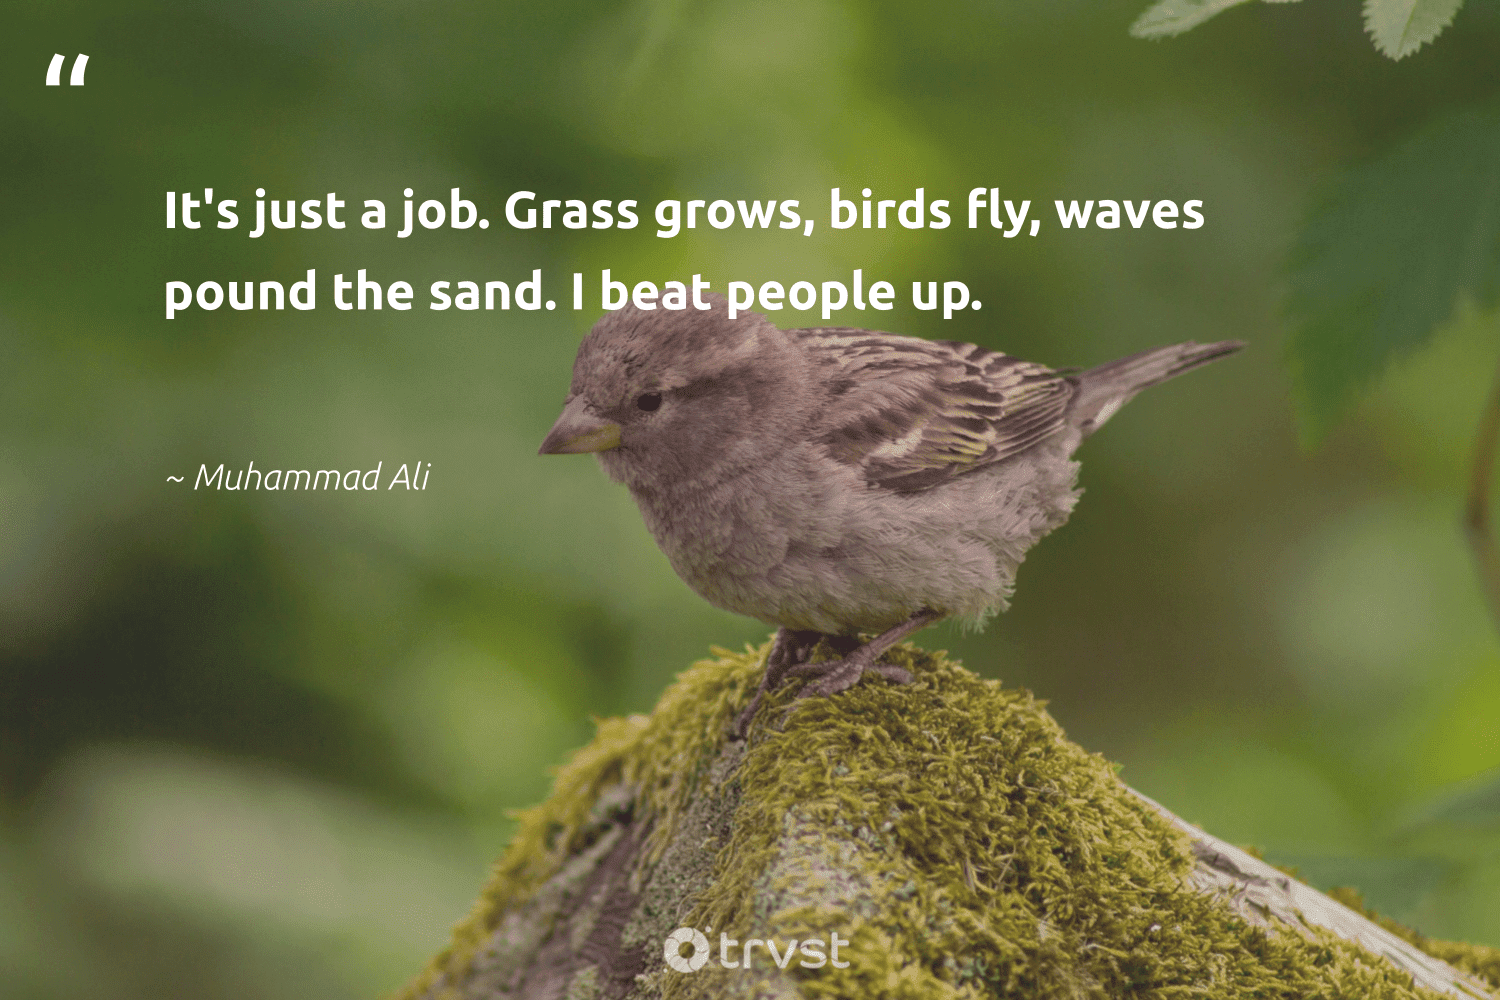 """""""It's just a job. Grass grows, birds fly, waves pound the sand. I beat people up.""""  - Muhammad Ali #trvst #quotes #waves #sand #birds #bird #biology #dotherightthing #natural #ecoconscious #nature #bethechange"""